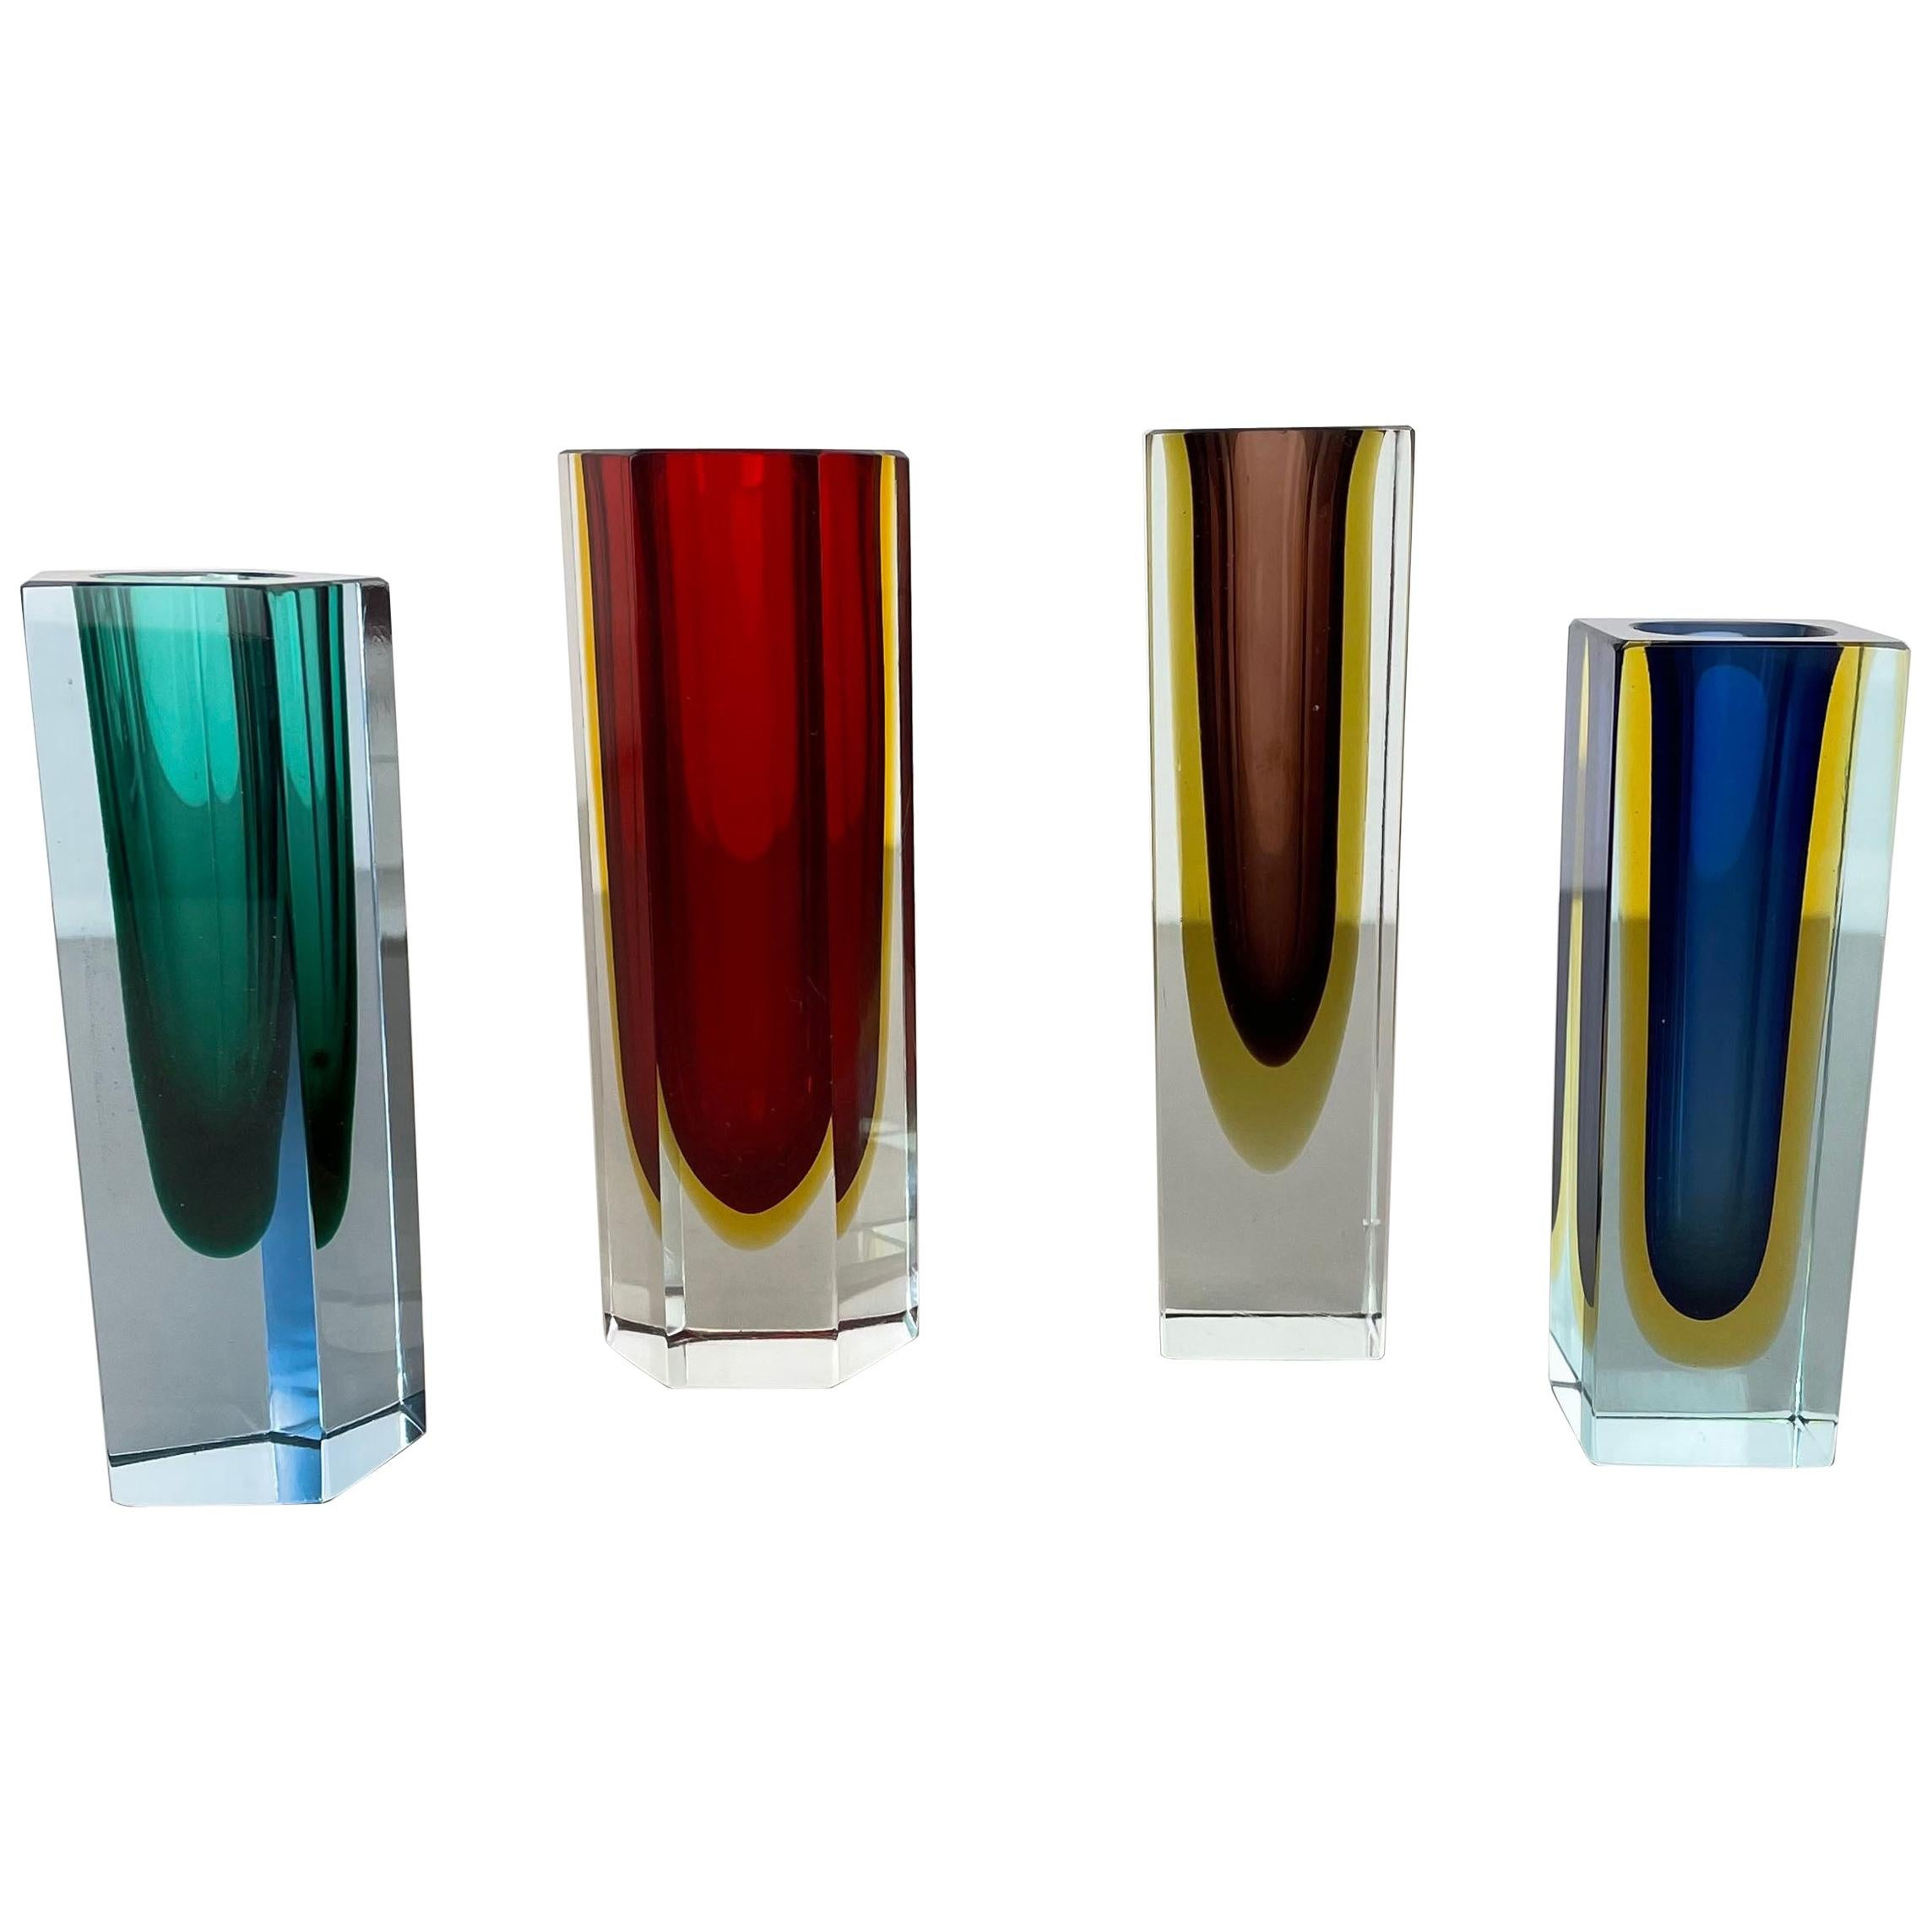 Set of 4 Faceted Murano Glass Sommerso Vases attri. Flavio Poli, Italy, 1970s